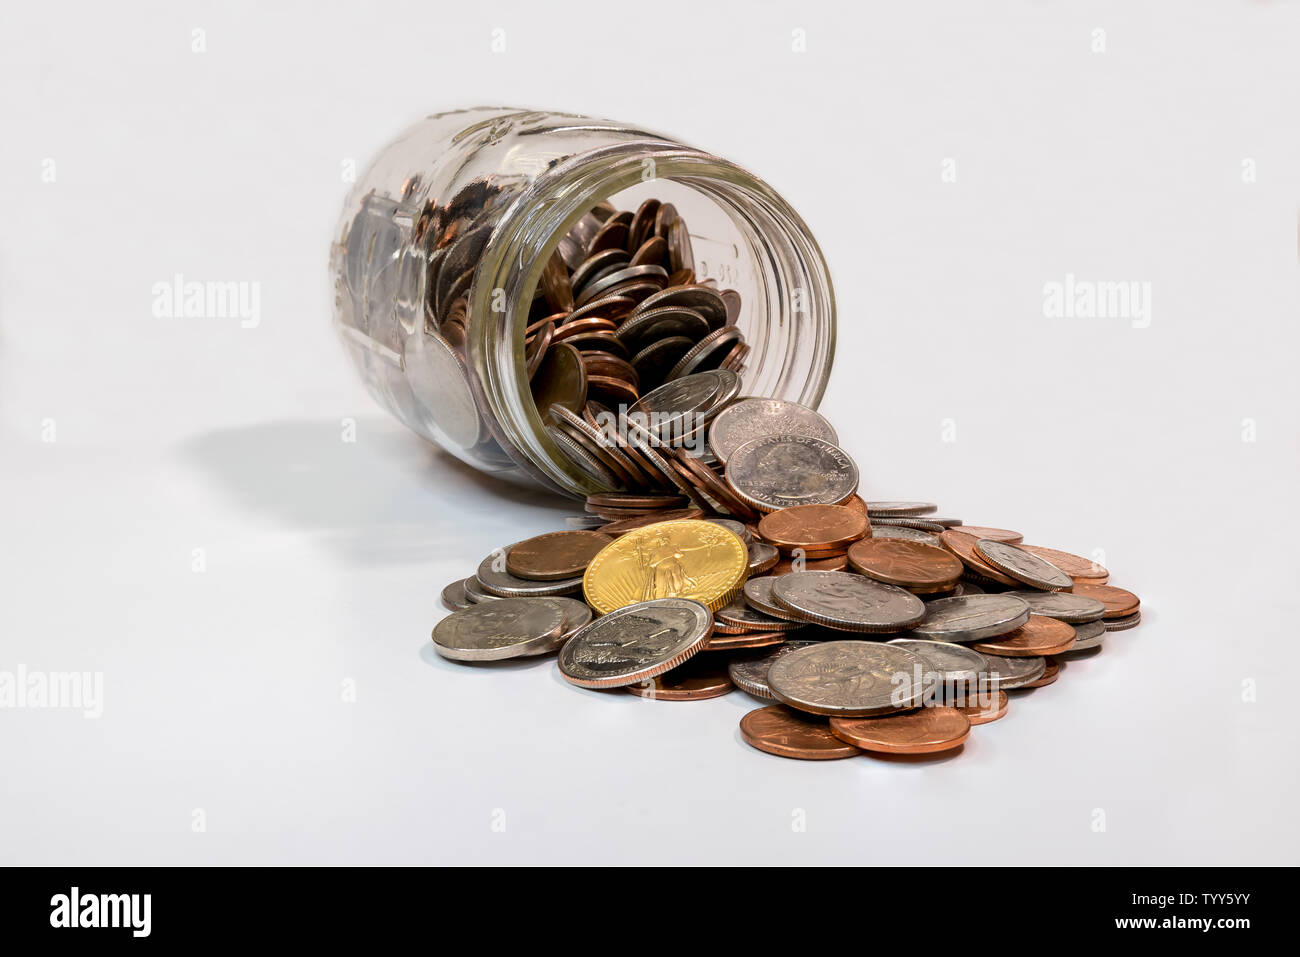 Spare change jar laying on its side with coins spilling out - Stock Image